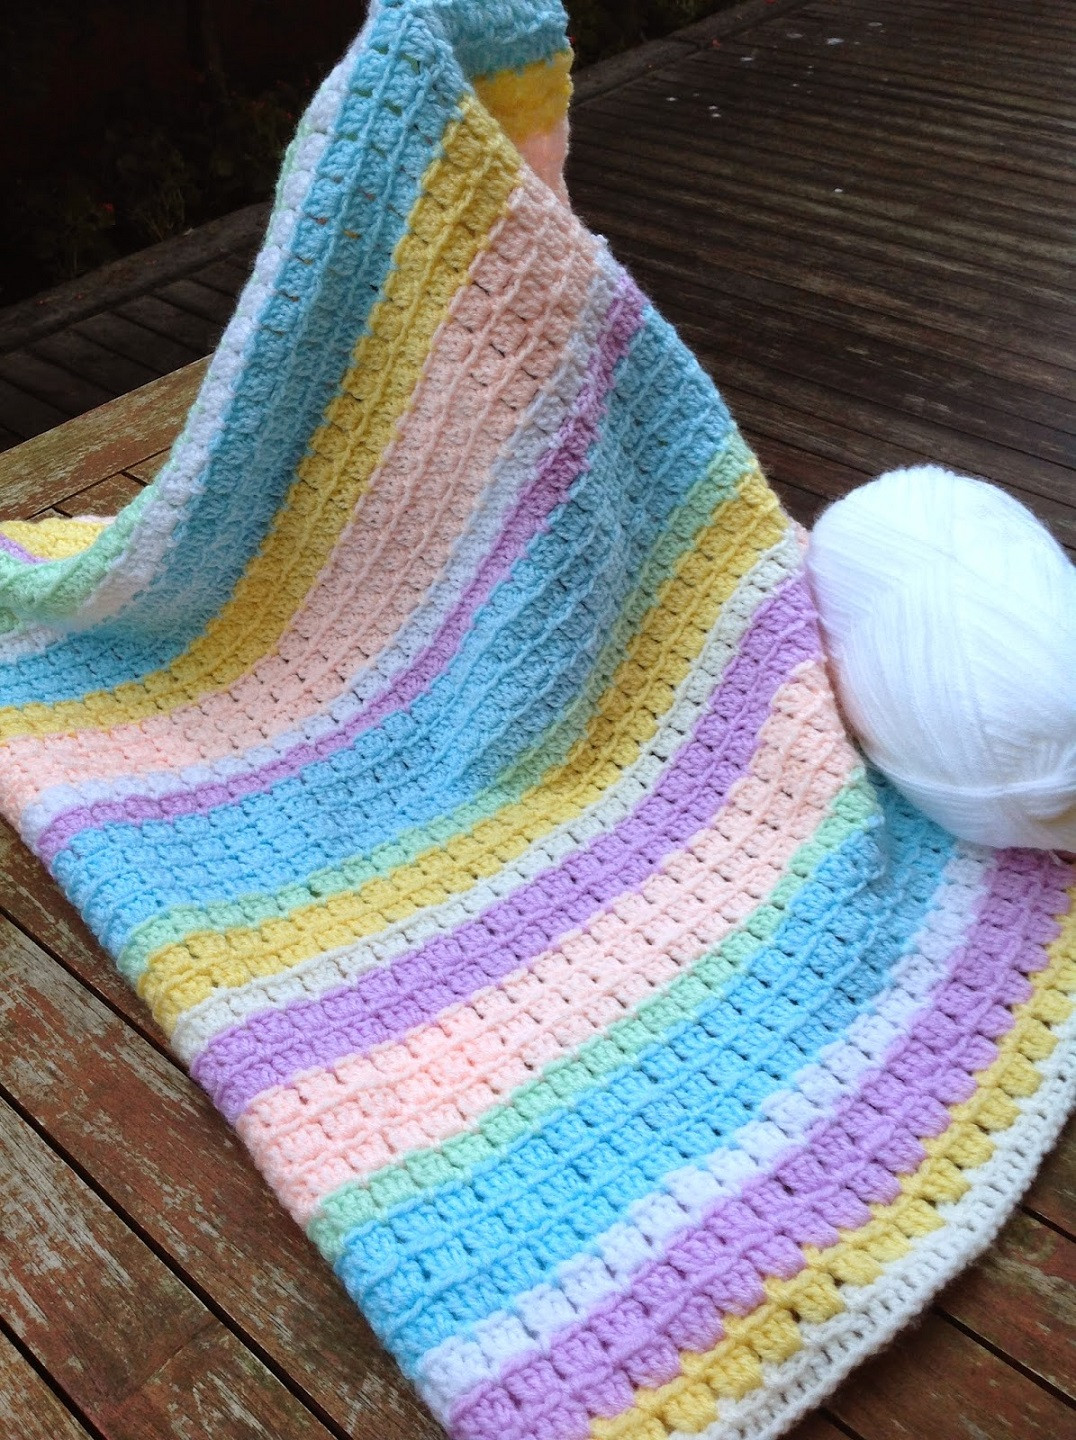 Elegant [free Pattern] Adorable Block Stitch Baby Blanket Knit Free Knitting and Crochet Patterns Of Marvelous 44 Ideas Free Knitting and Crochet Patterns